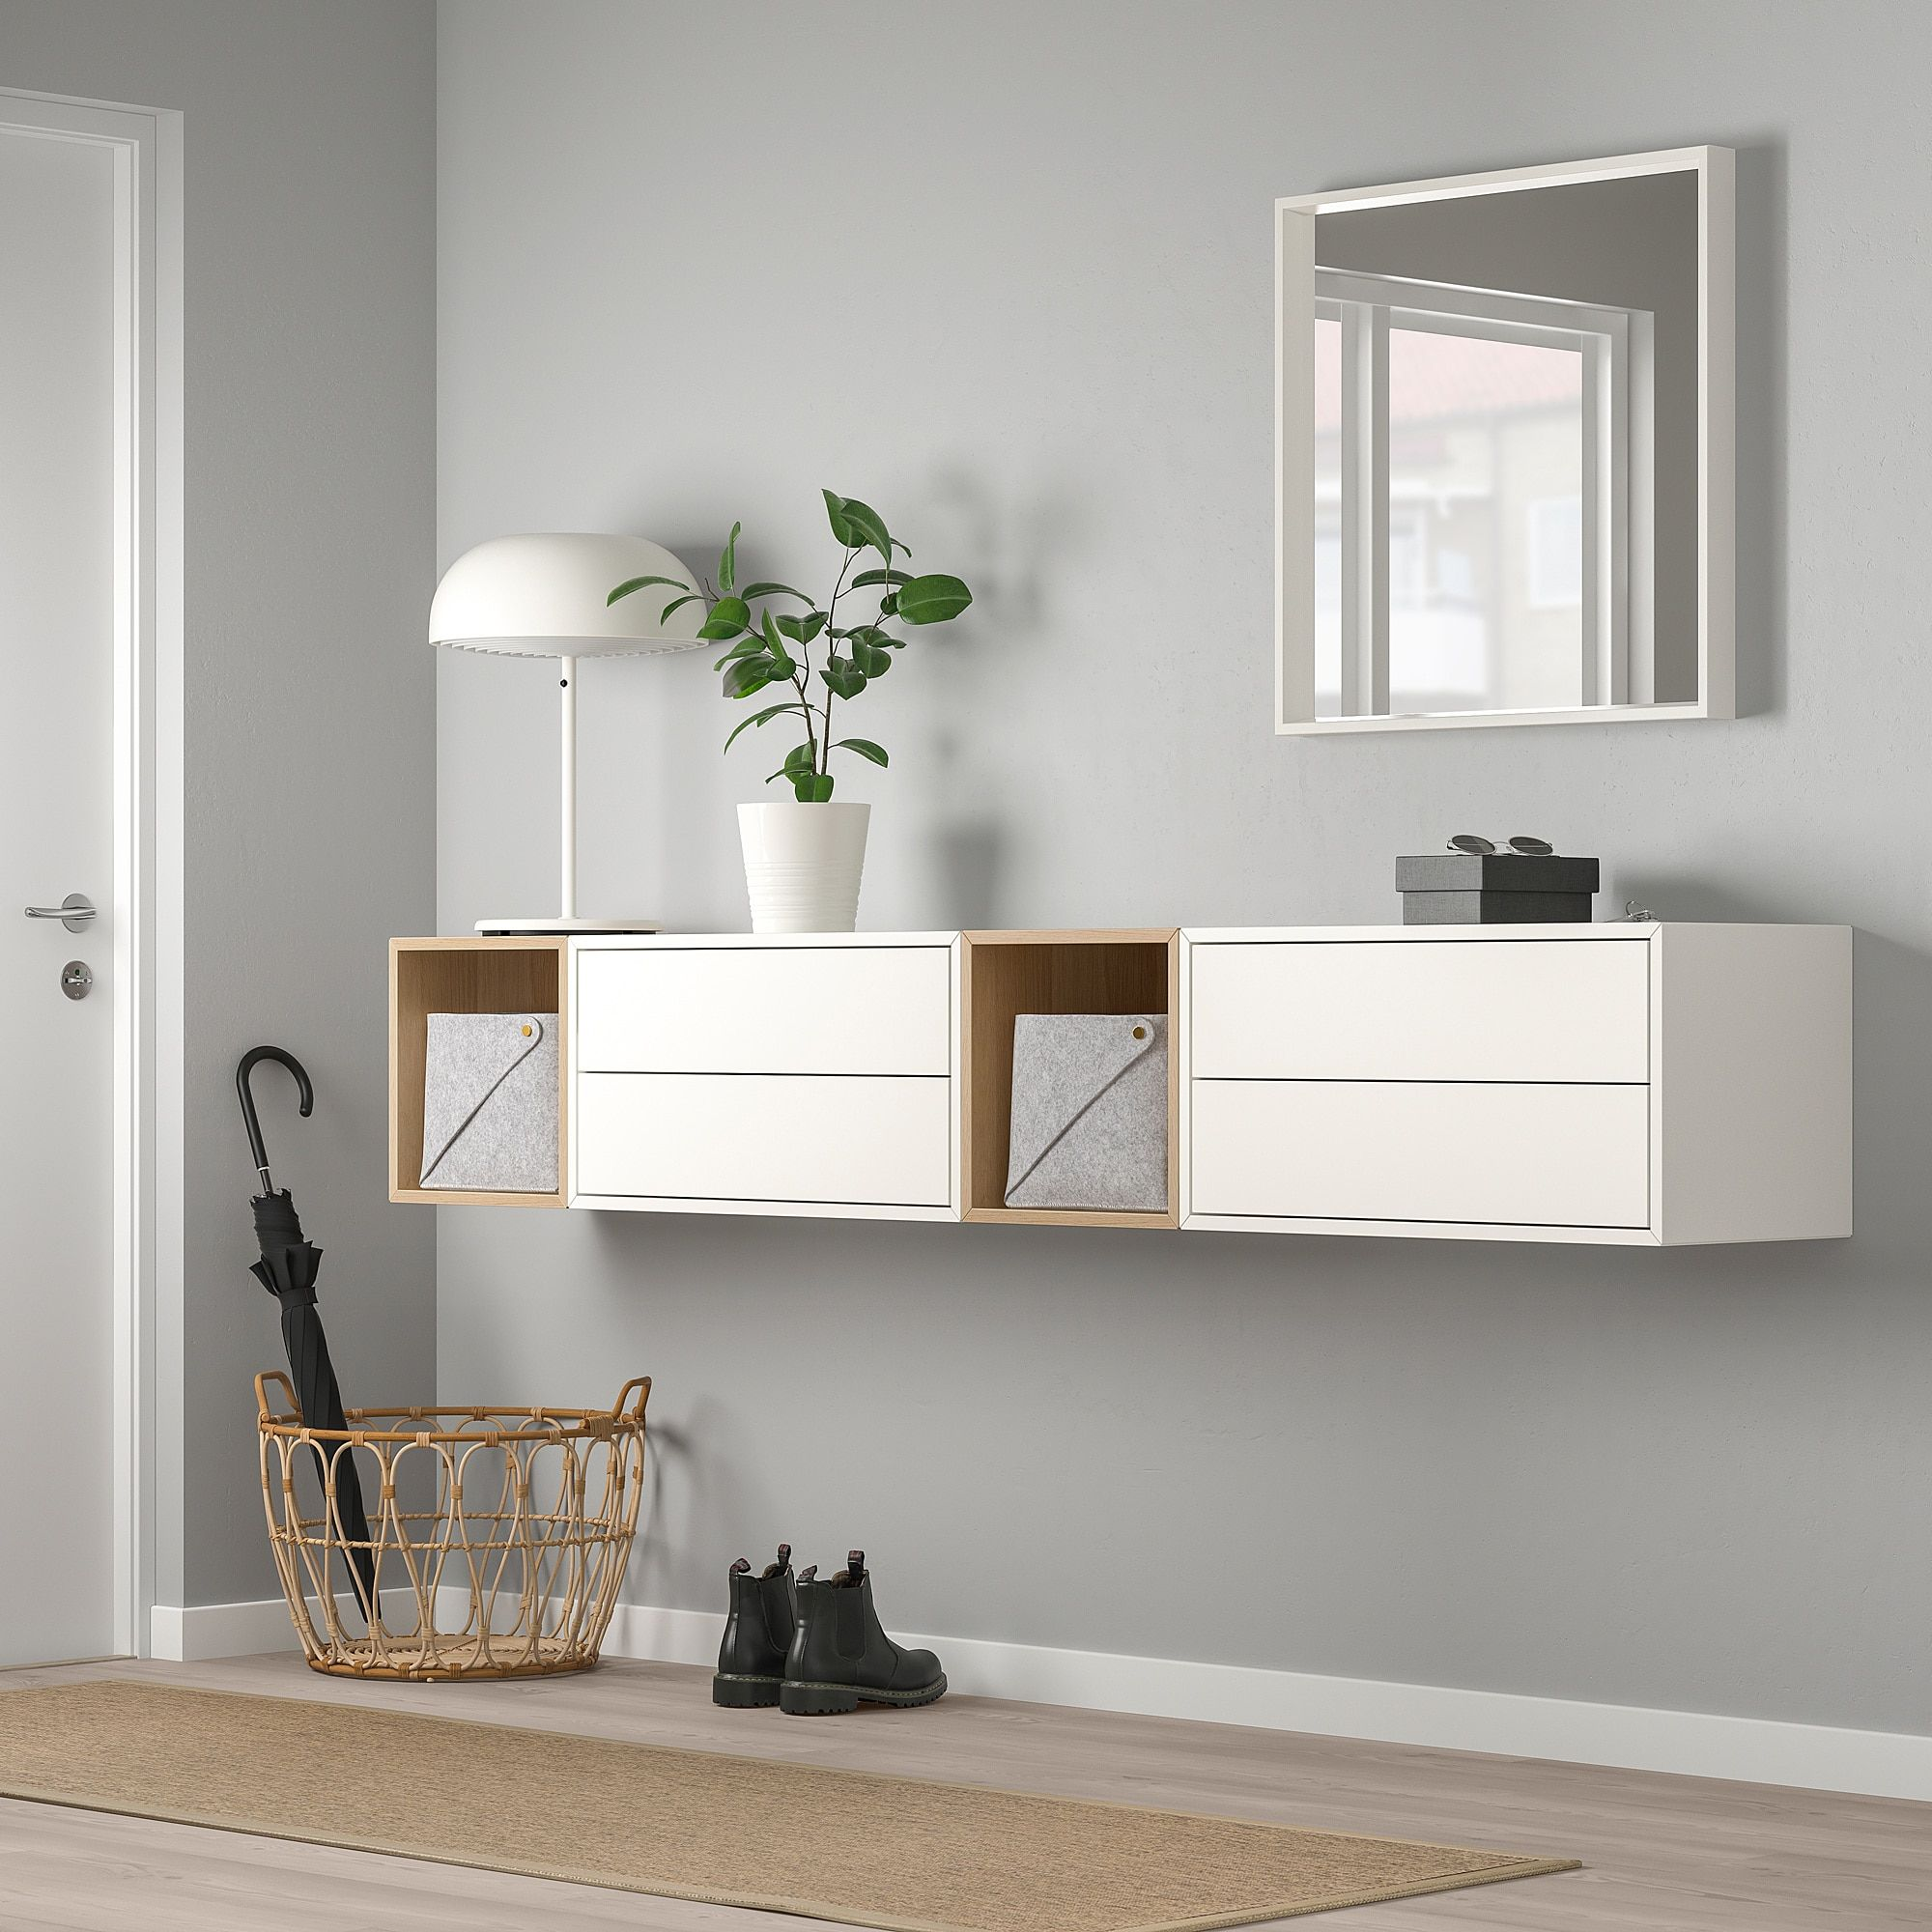 Best Eket Wall Mounted Cabinet Combination White White 400 x 300